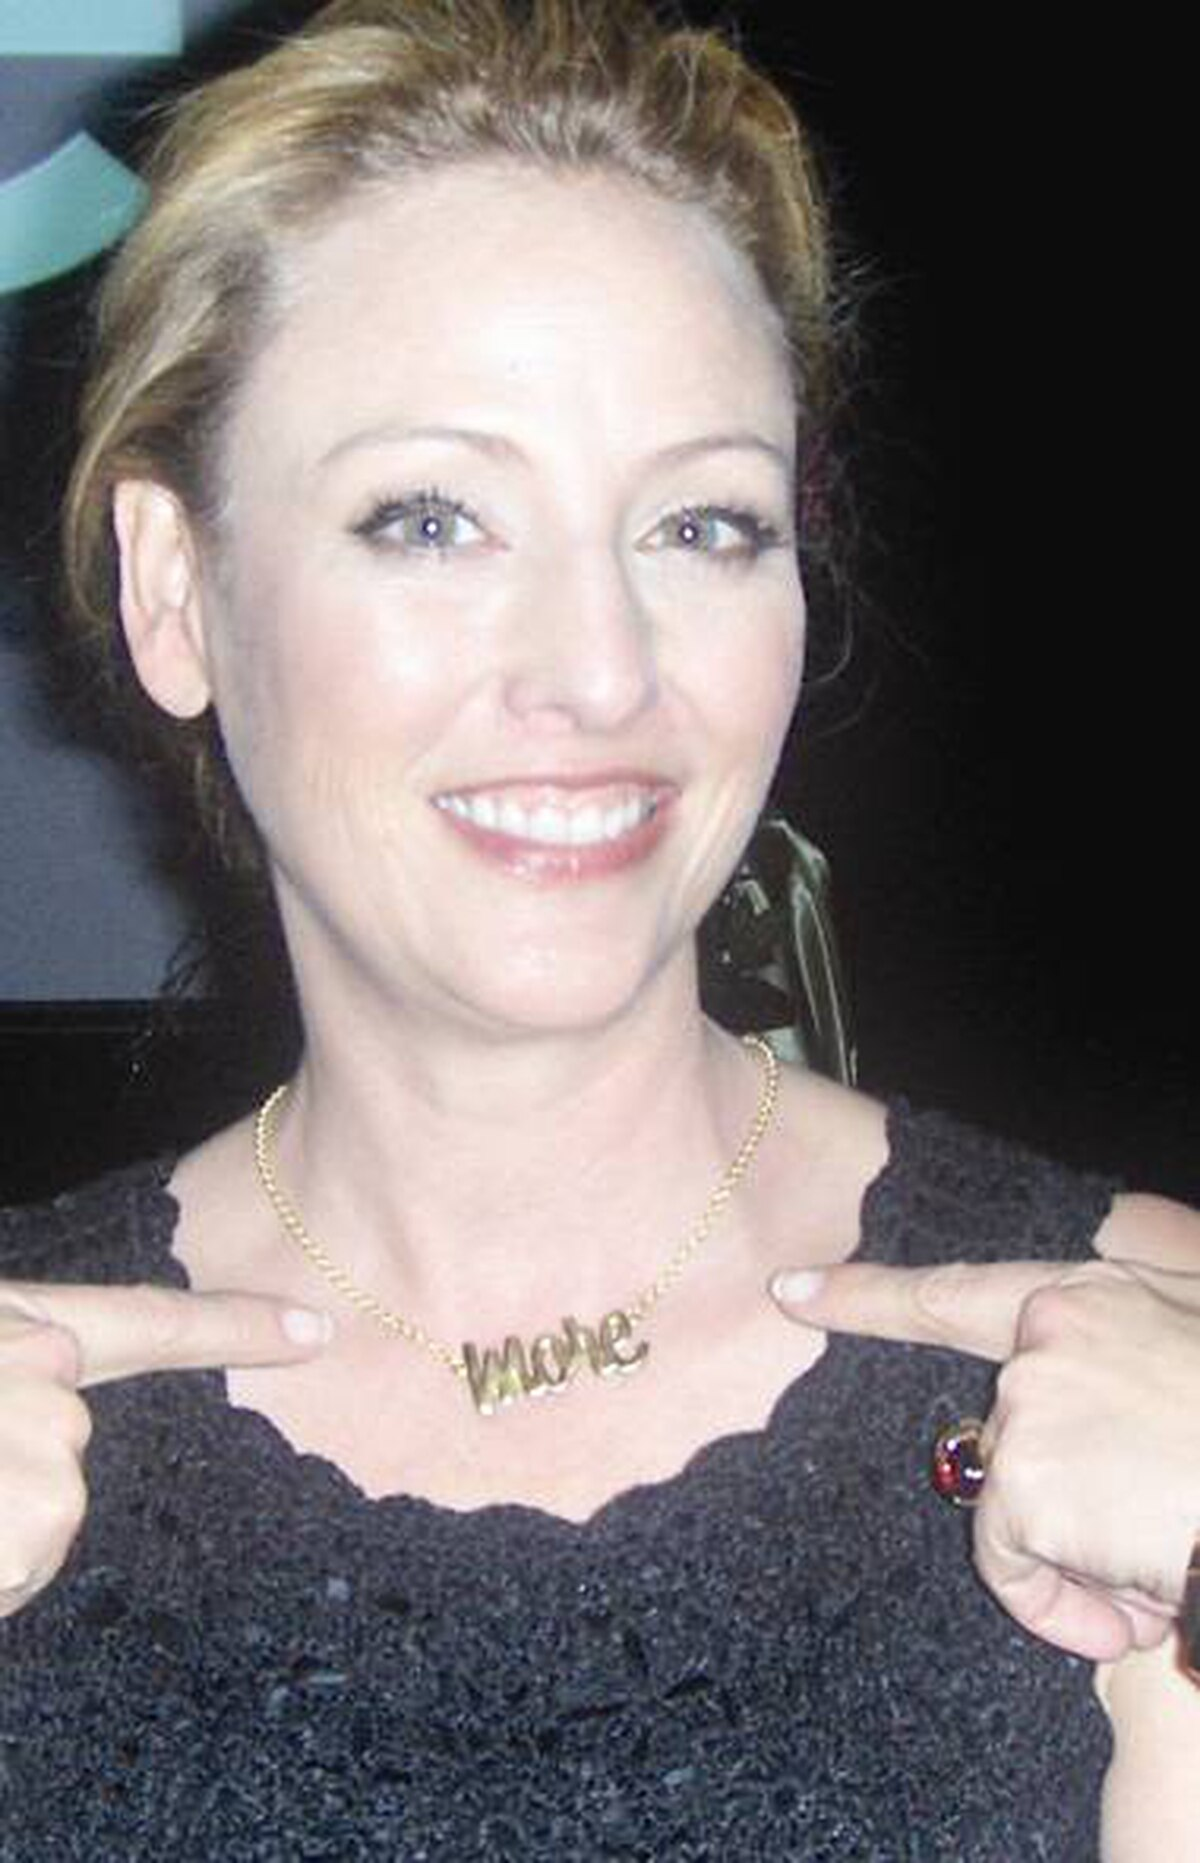 Actress Virginia Madsen sports a custom-made Foxy Originals necklace.